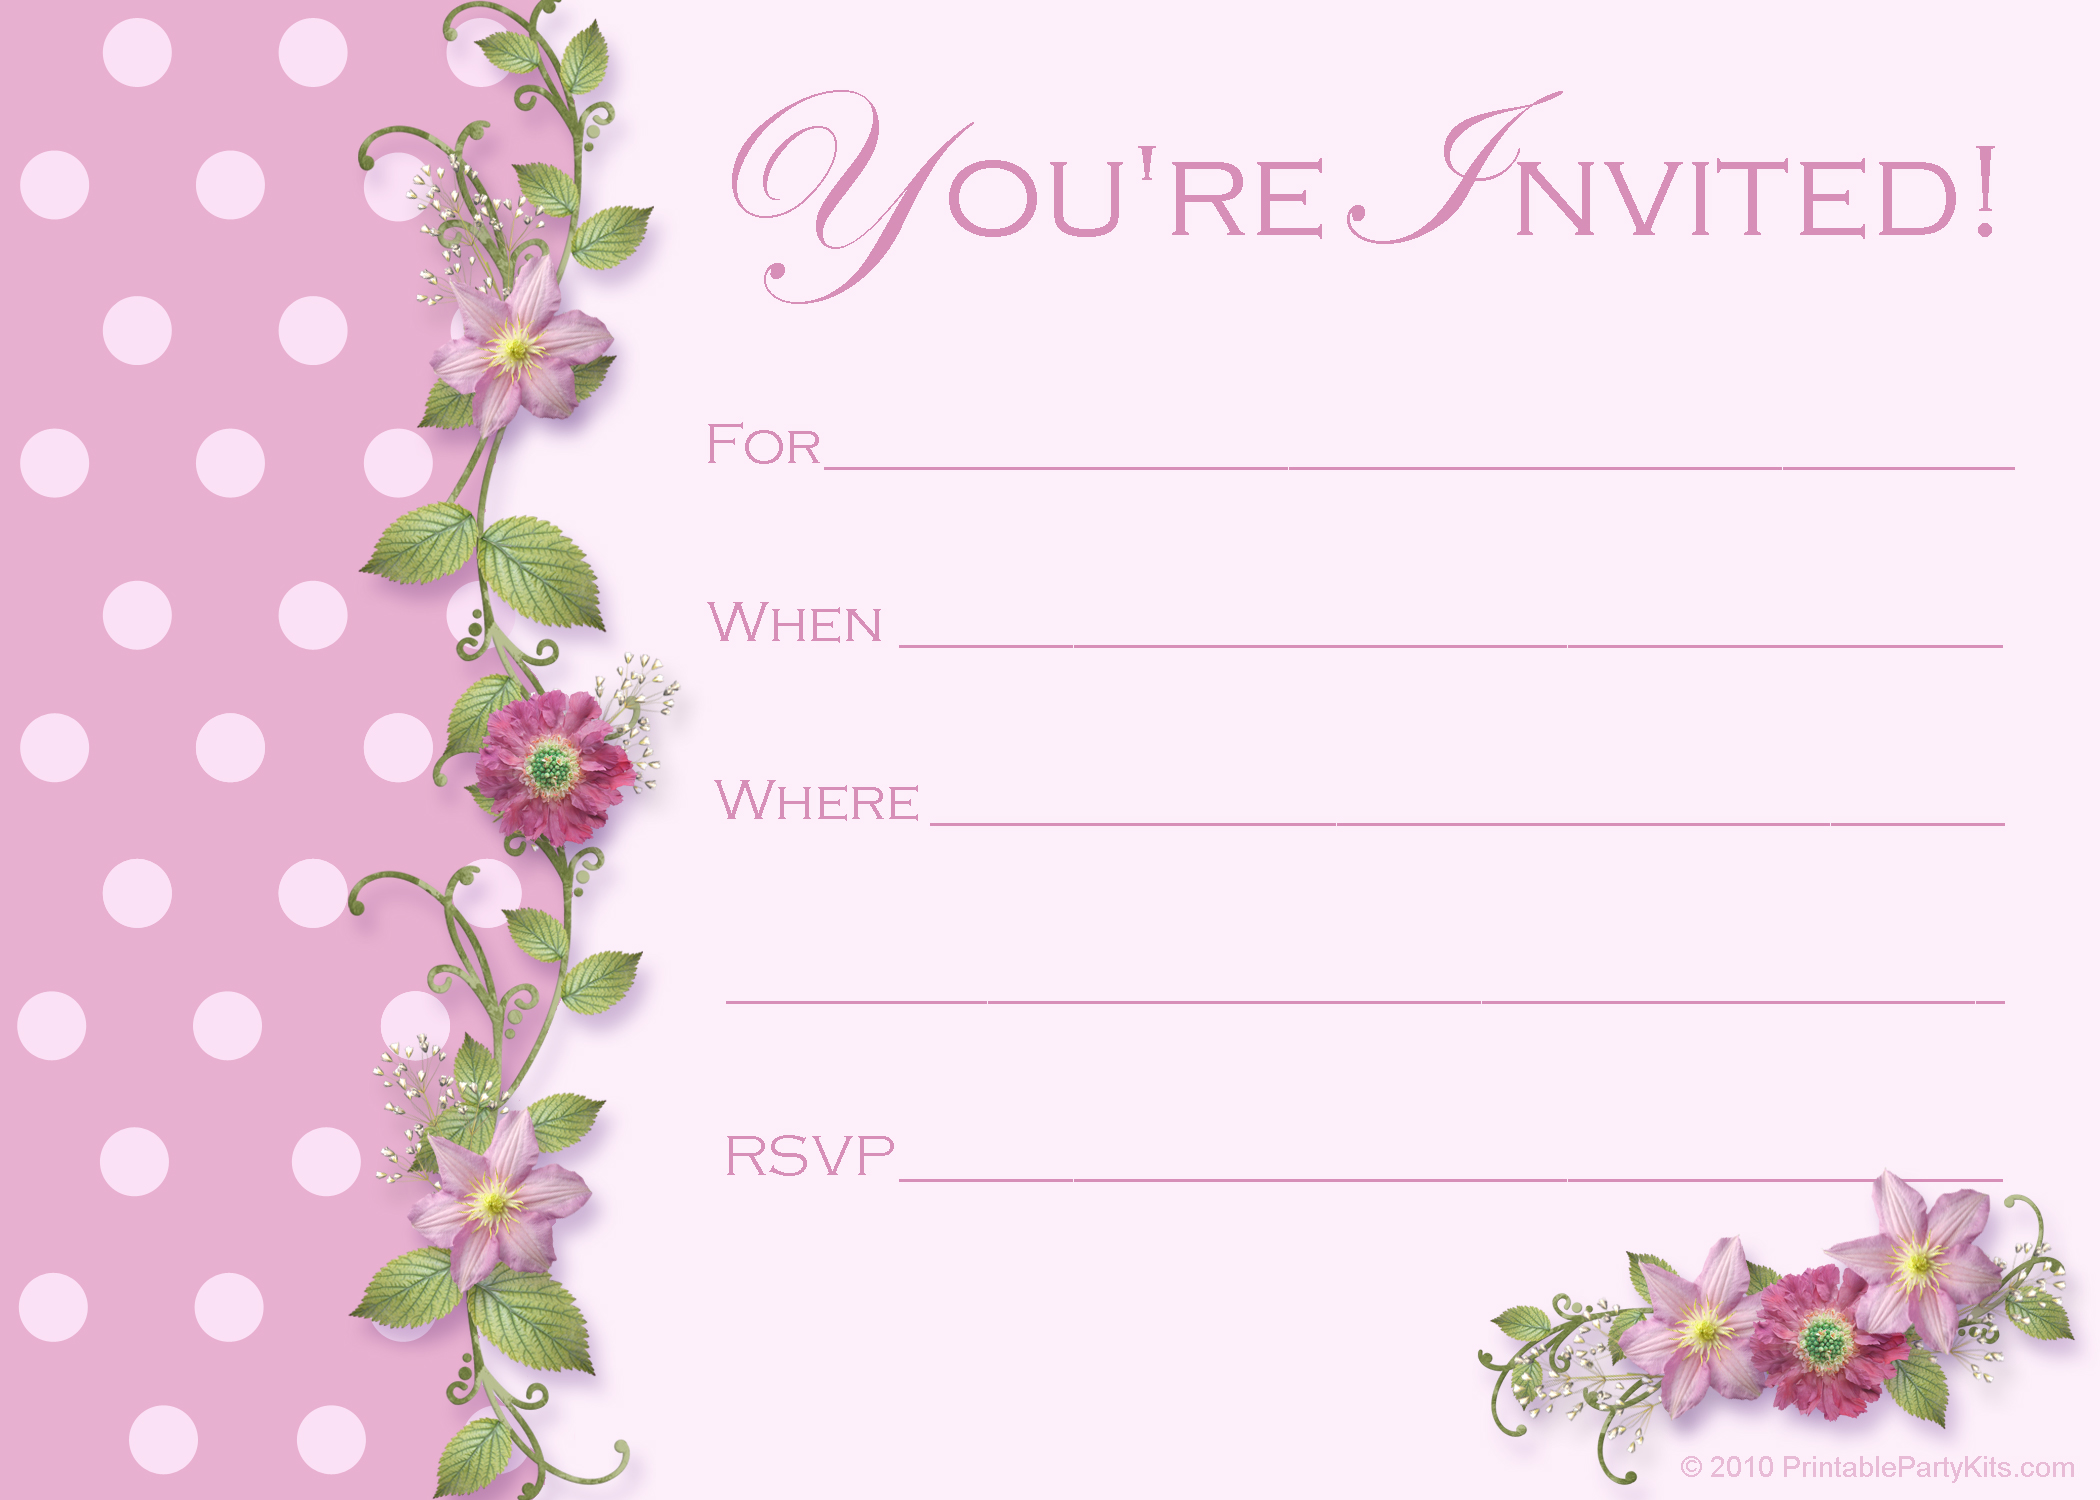 party invites templates - Etame.mibawa.co